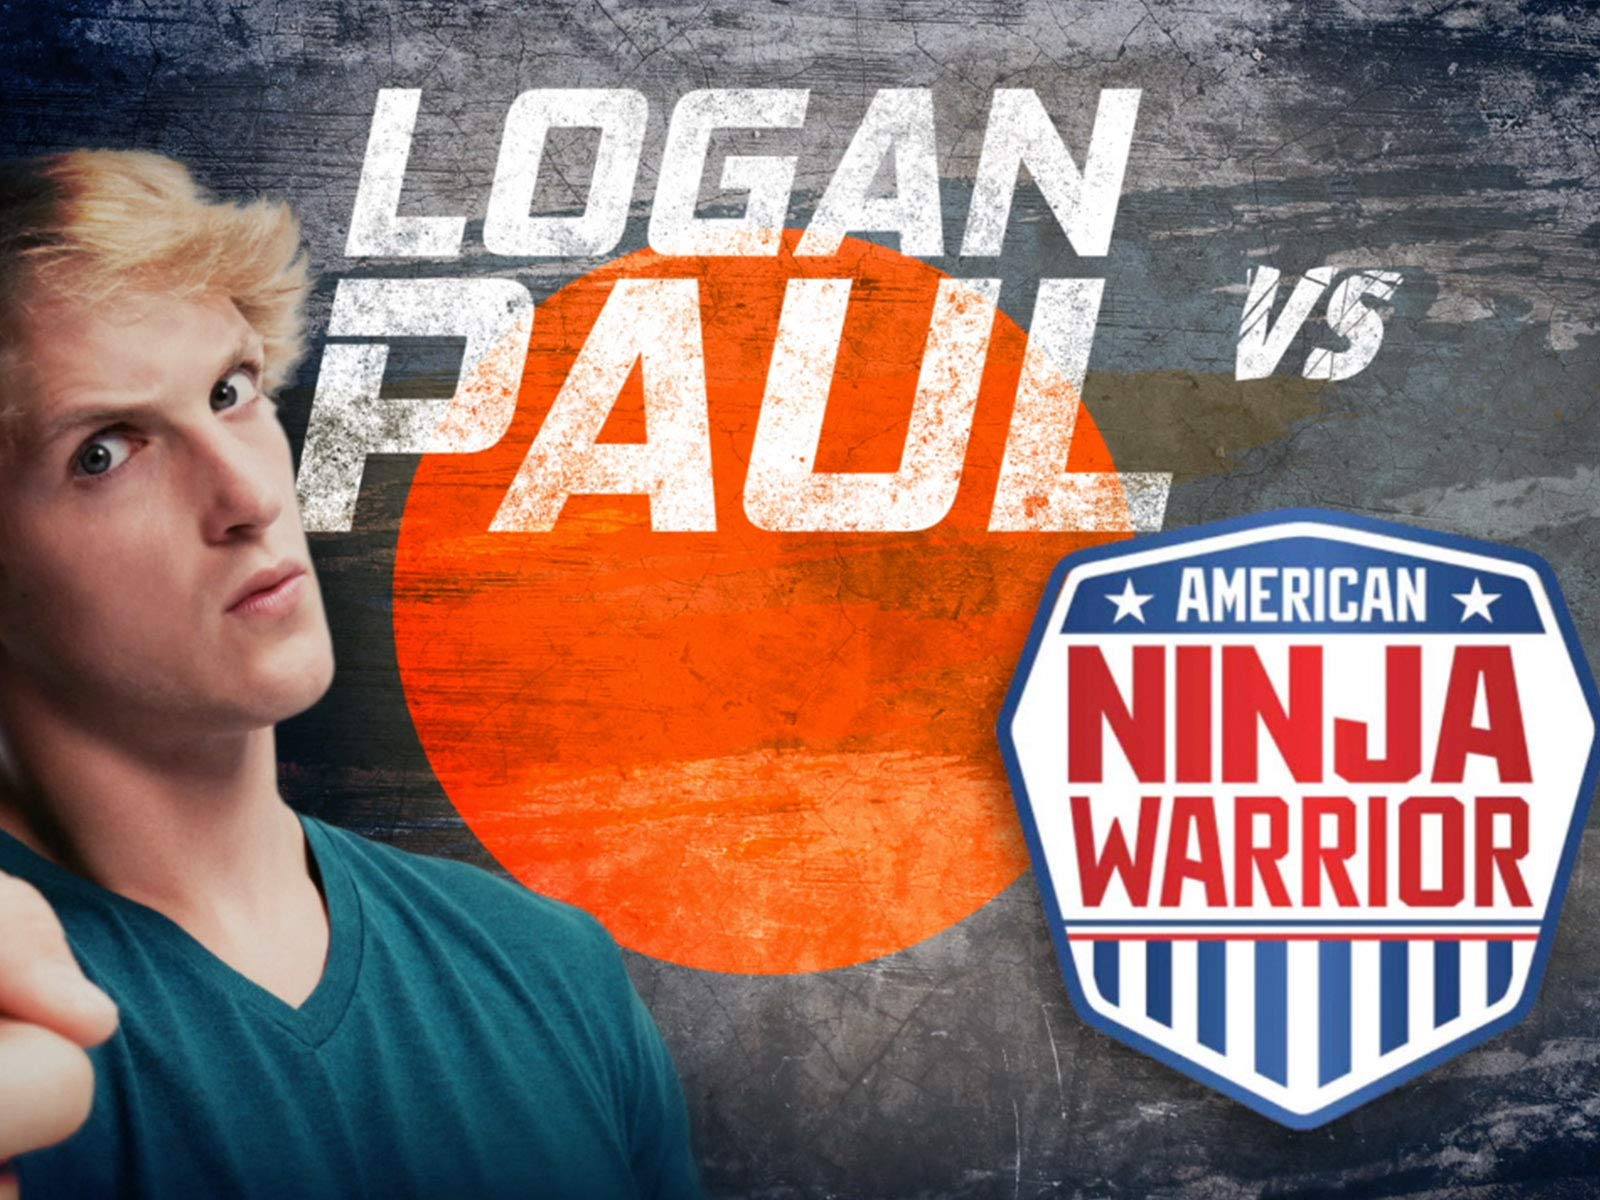 Amazon.com: Watch Logan Paul Vs | Prime Video